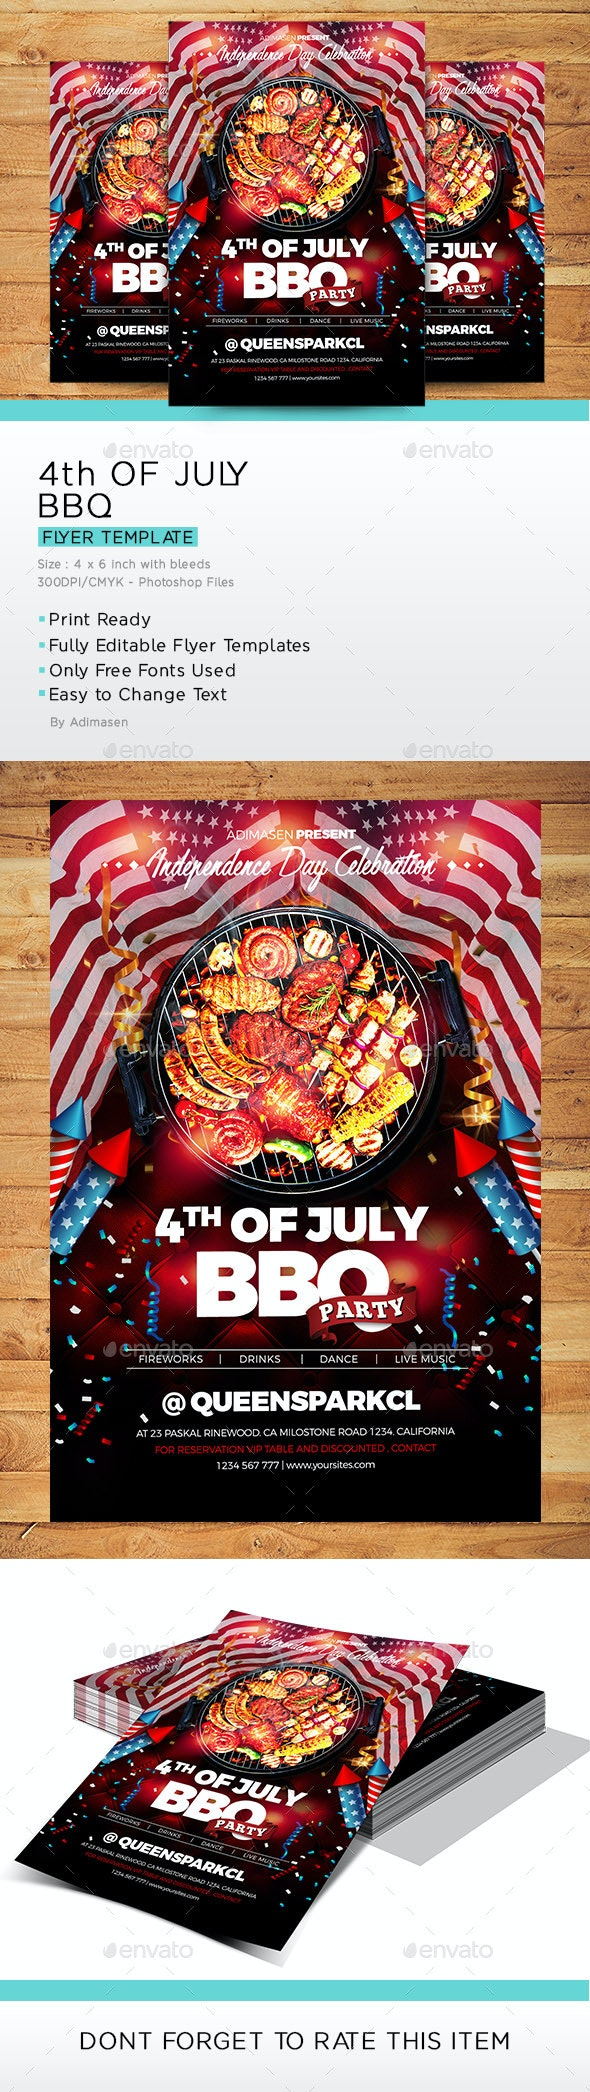 4th OF JULY BBQ Flyer - Events Flyers